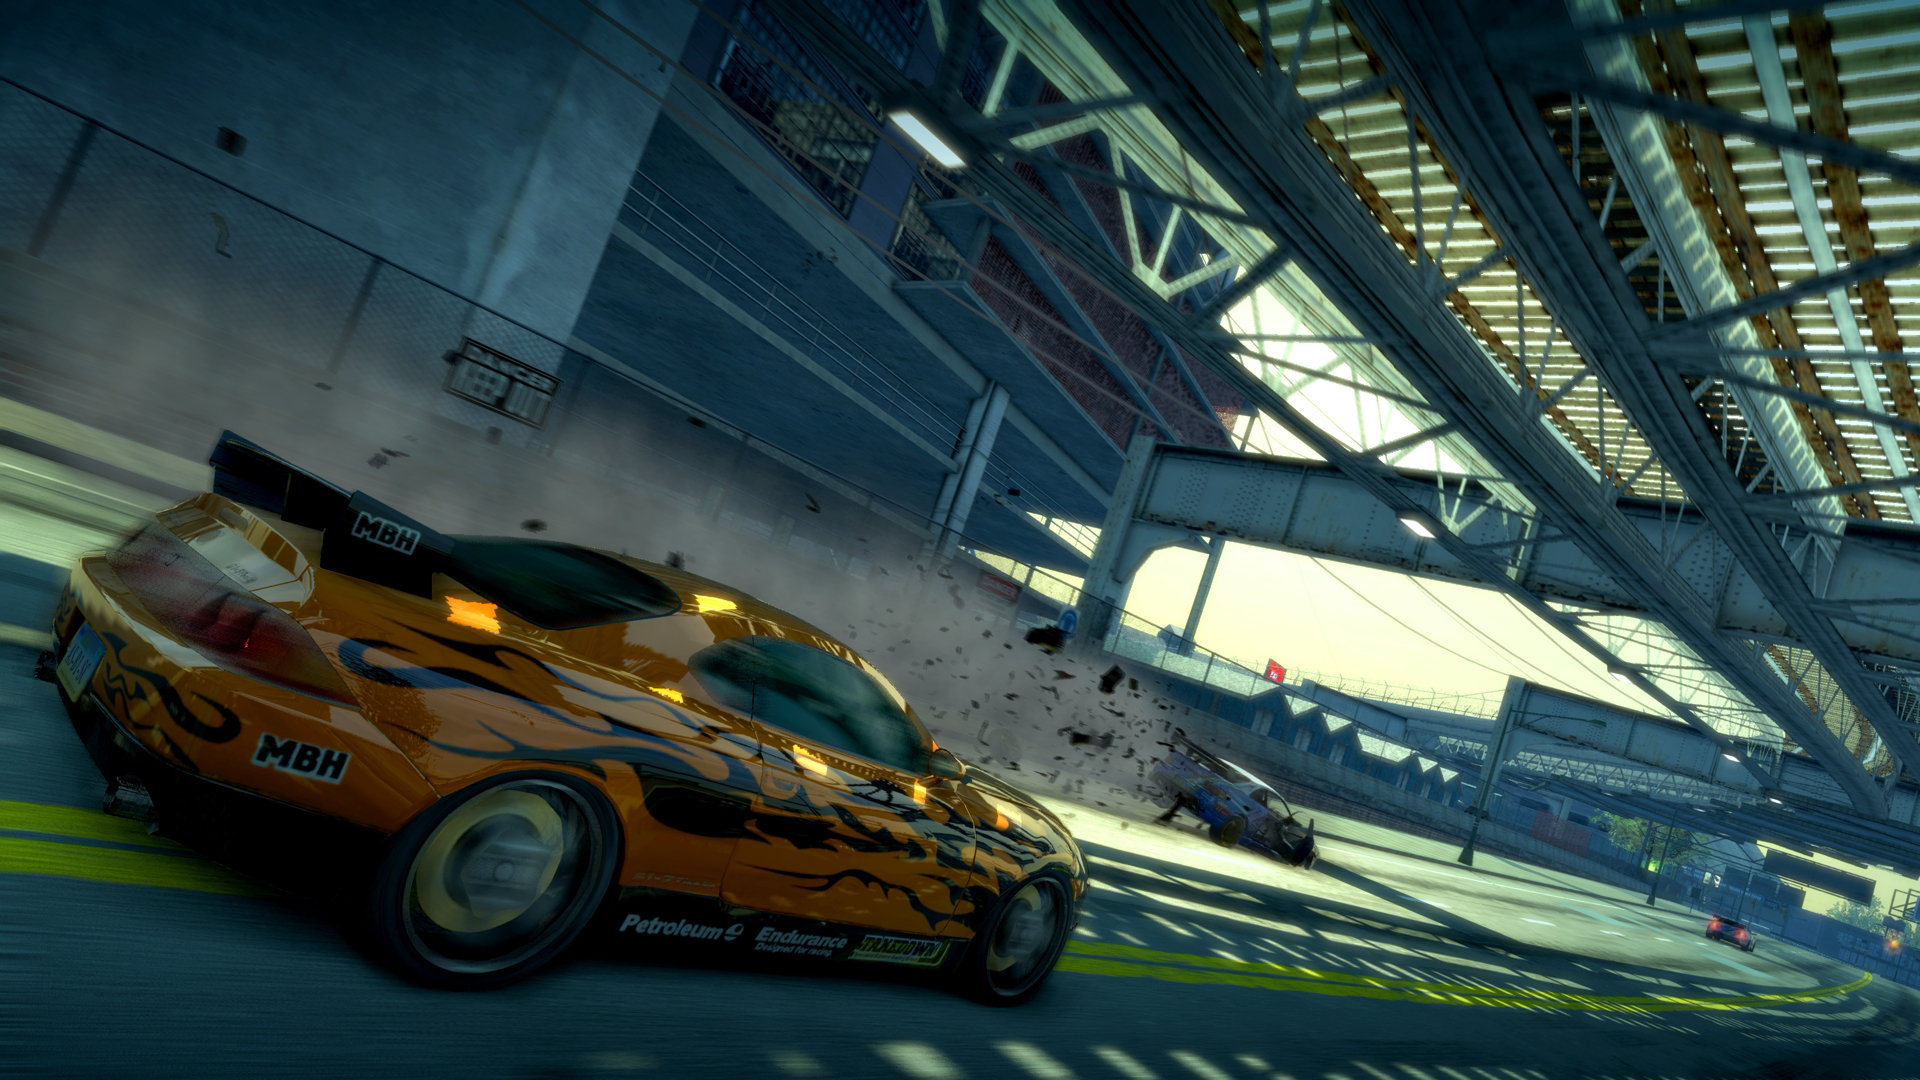 Dc5n United States Software In English Created At 2018 03 11 0230 The Engine Whisperertm Blog Archive Car Trailer Wiring A Handful Of Games Release On Xbox One Every Week Ranging From Aaa Titles To Lesser Known Indie Wire Compiles Many These Releases